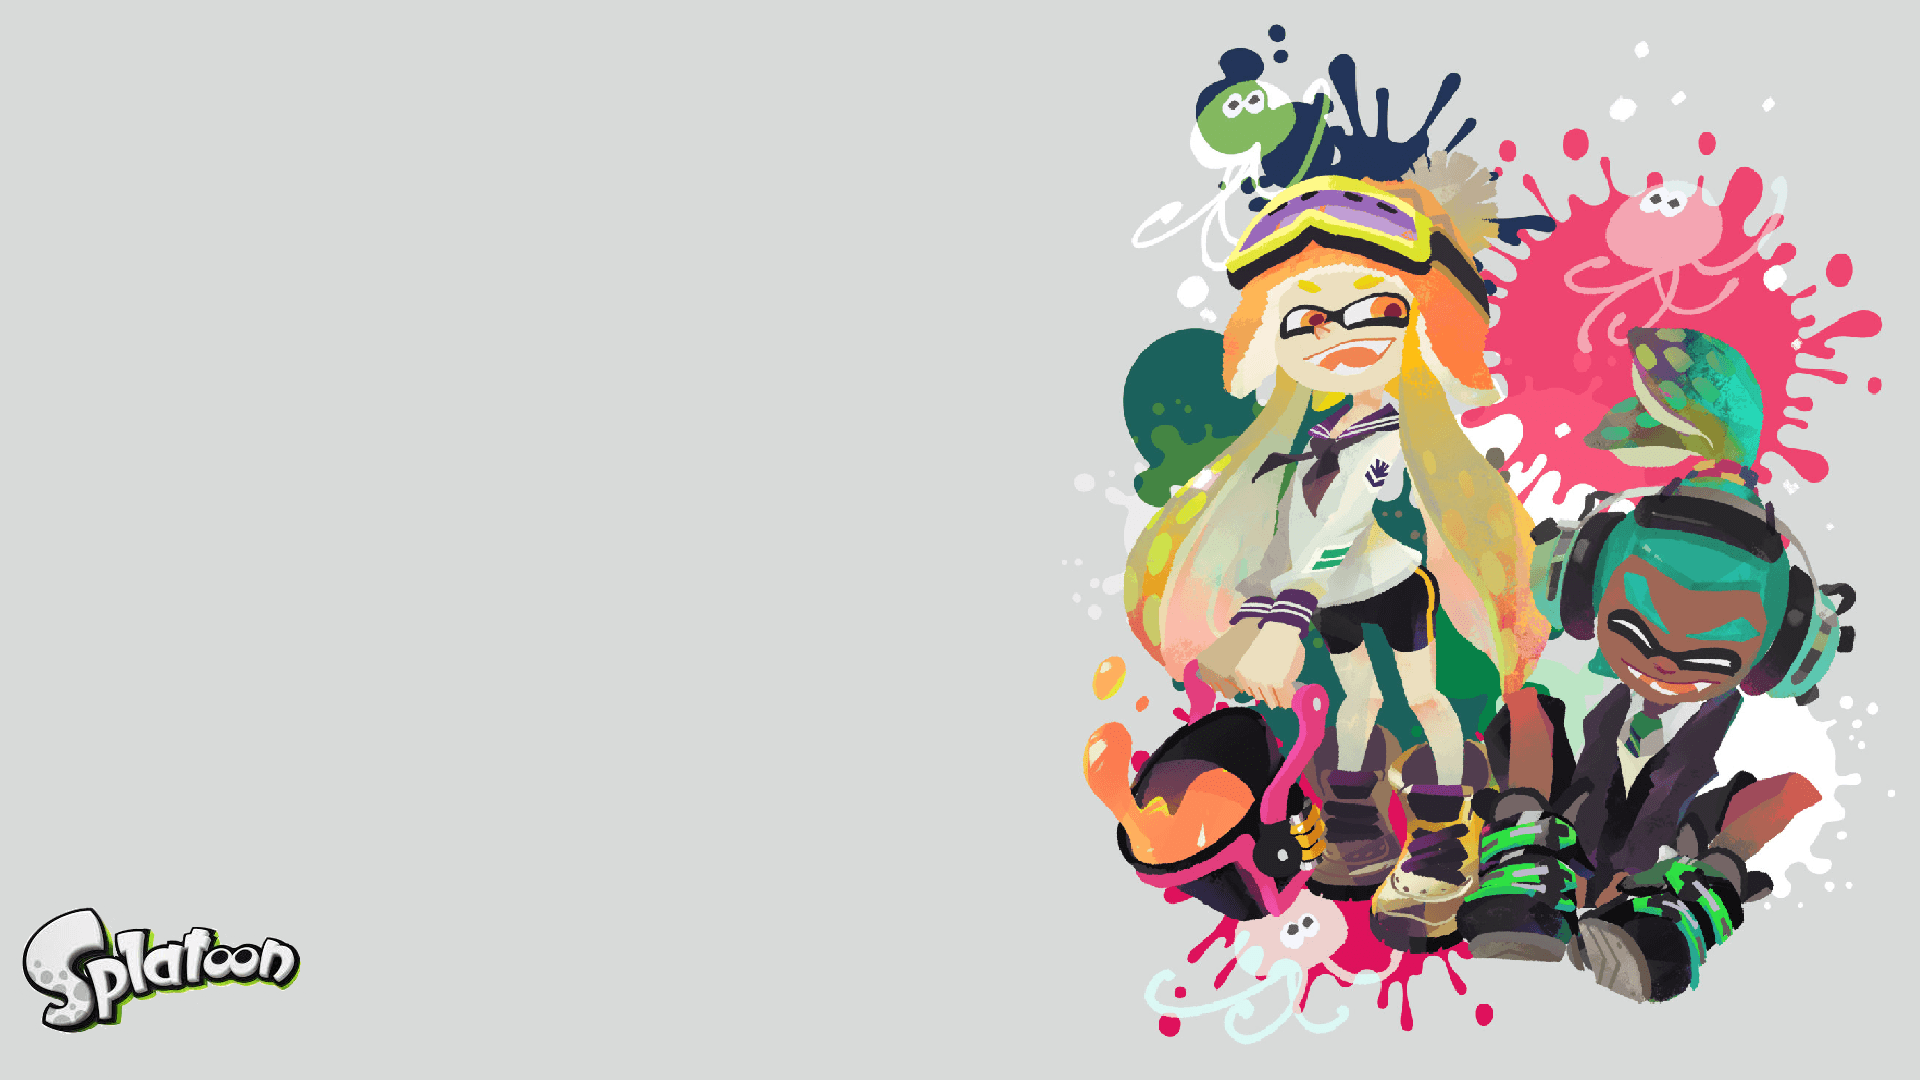 splatoon wallpaper by xxzicexx - photo #7